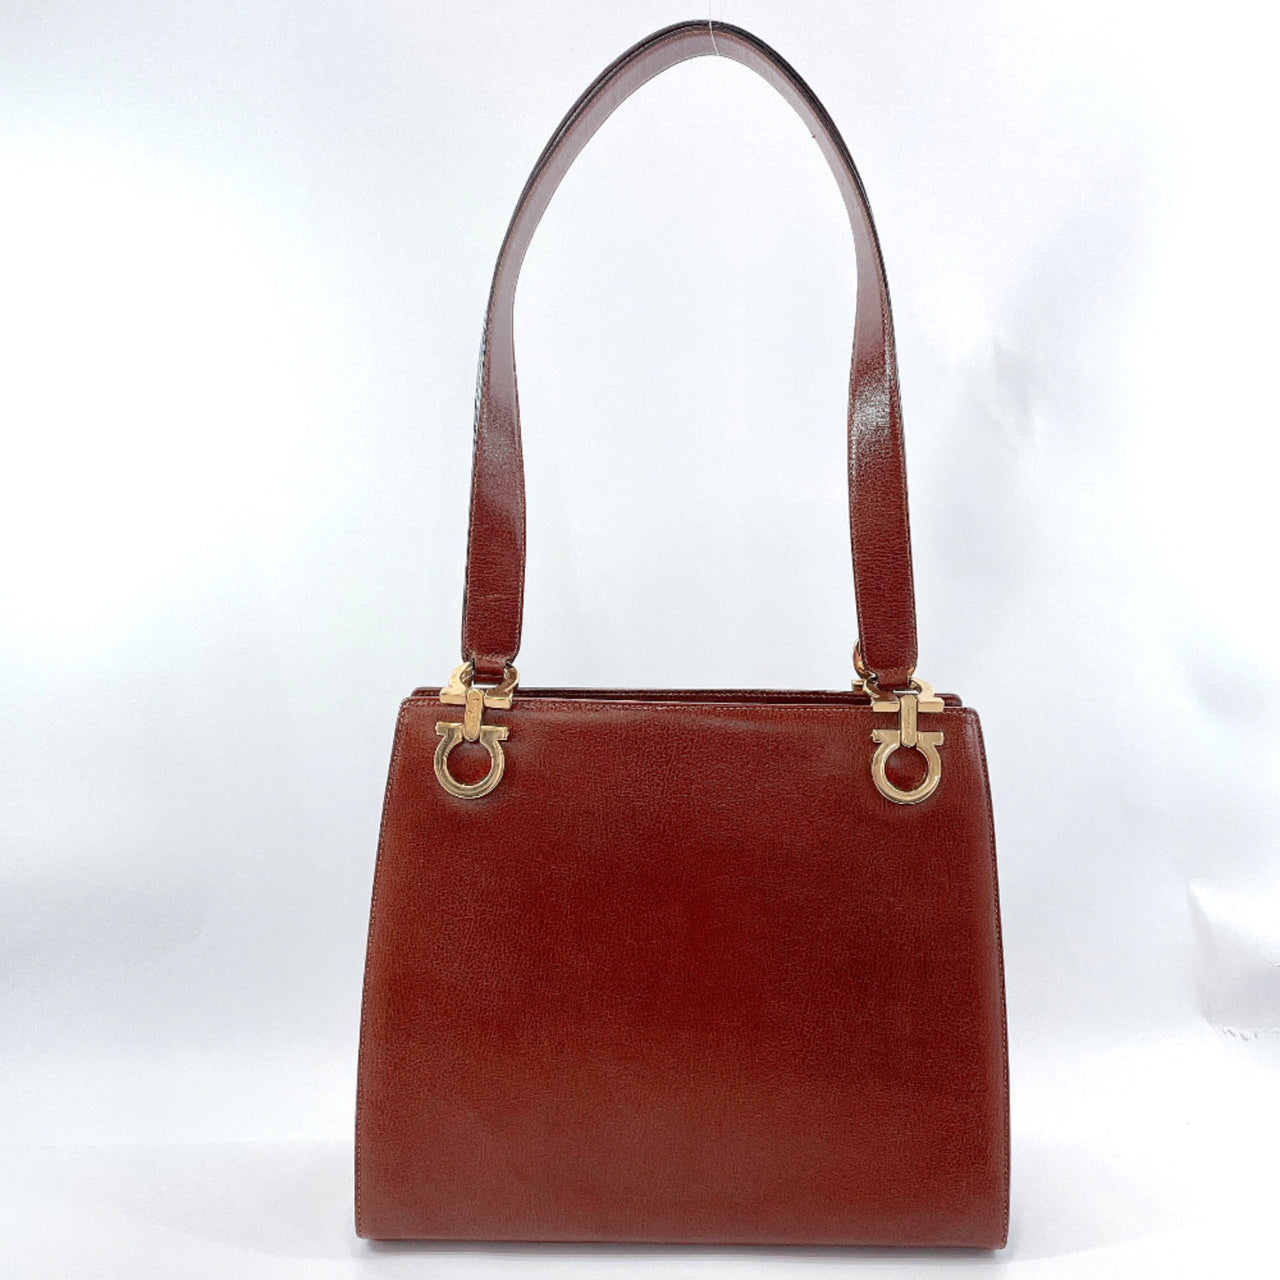 Salvatore Ferragamo Shoulder Bag BC216676 Gancini vintage leather Brown Gold Hardware Women Used